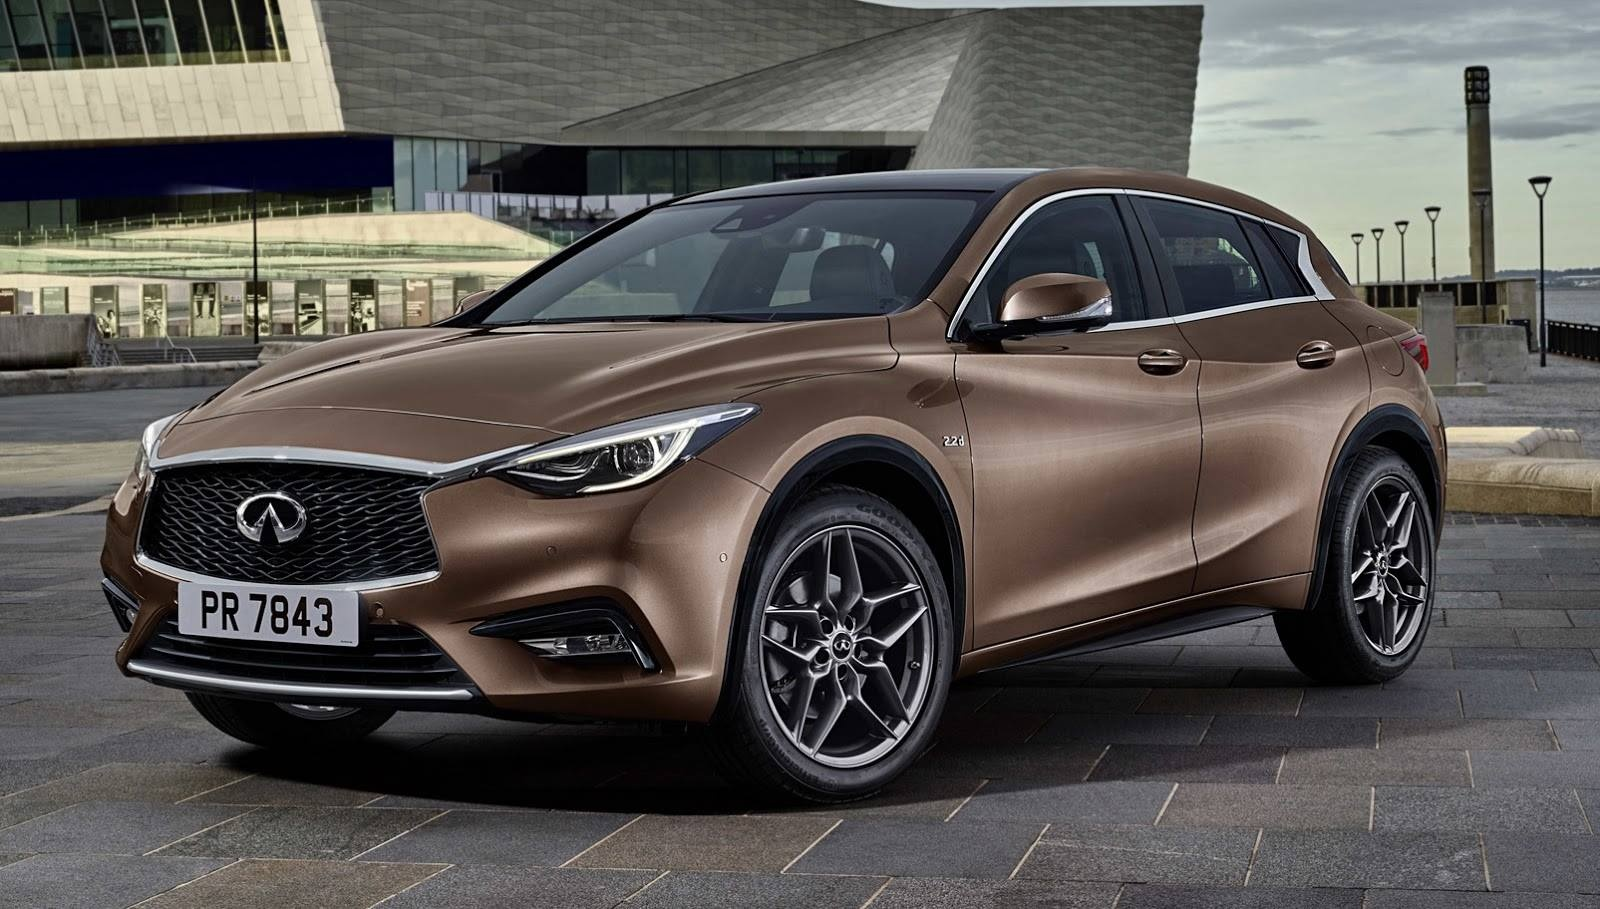 new-infiniti-q30-reveals-itself-in-first-official-photo-97987_1